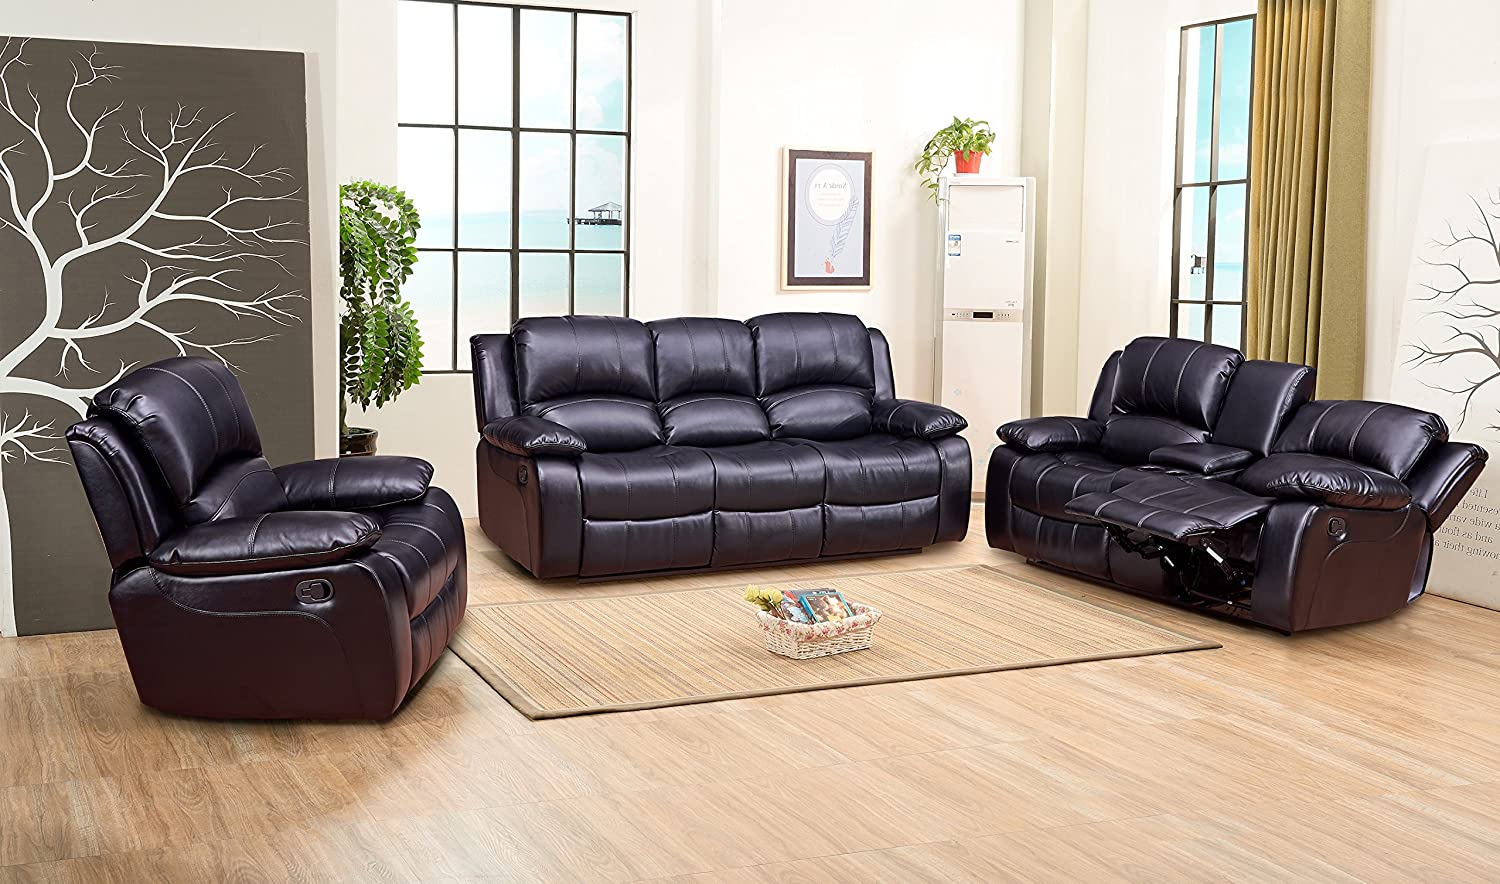 Living Room Set in Black, Sofa + Loveseat + Chair, Pillow Top Backrest and Armrests